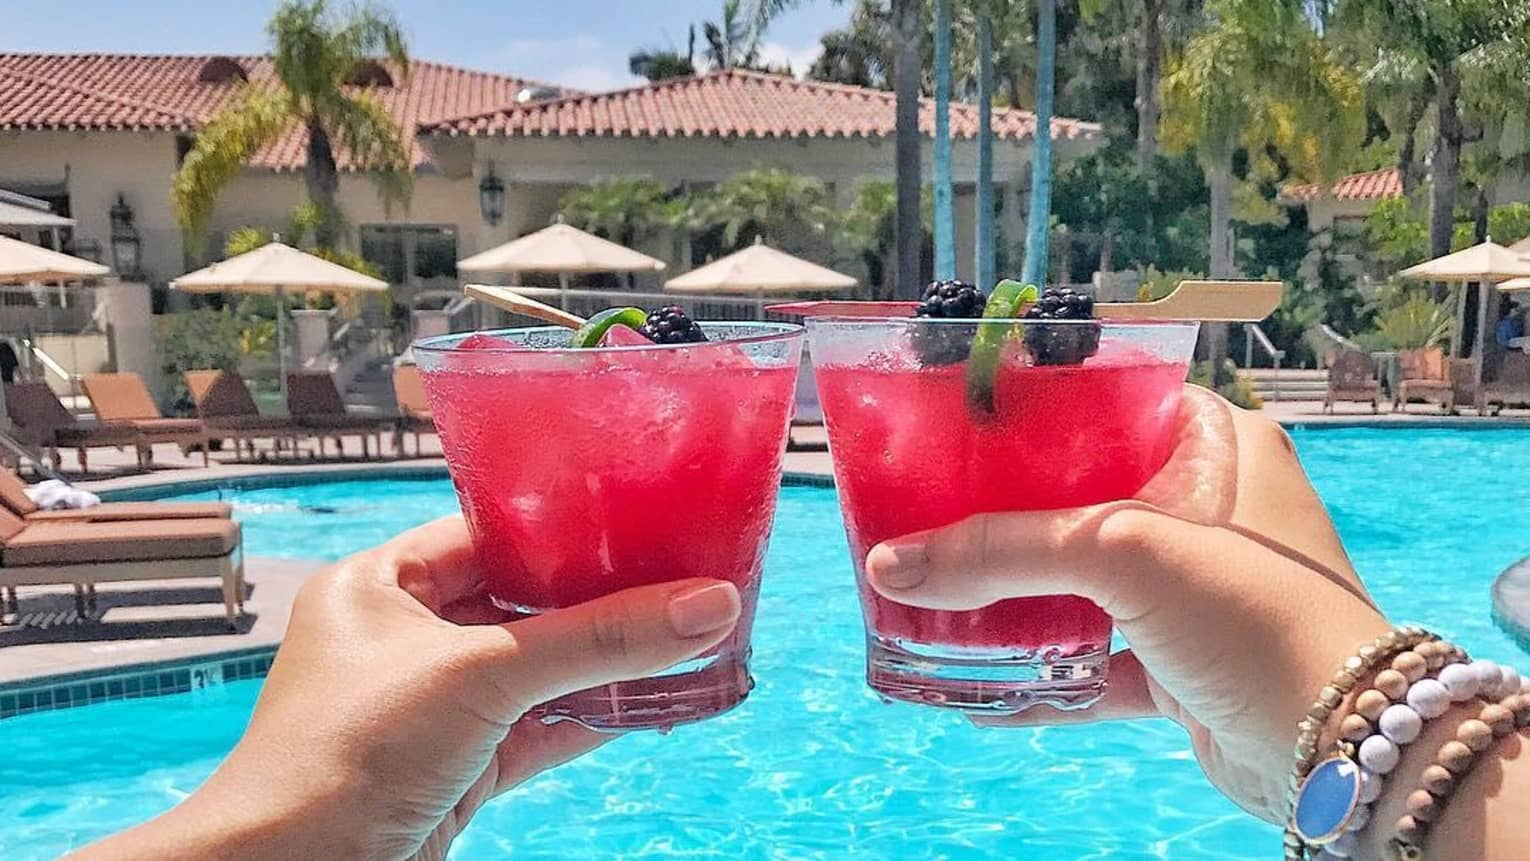 Hands toasting with red cocktails with fruity lime and blackberry garnish, in front of sunny swimming pool